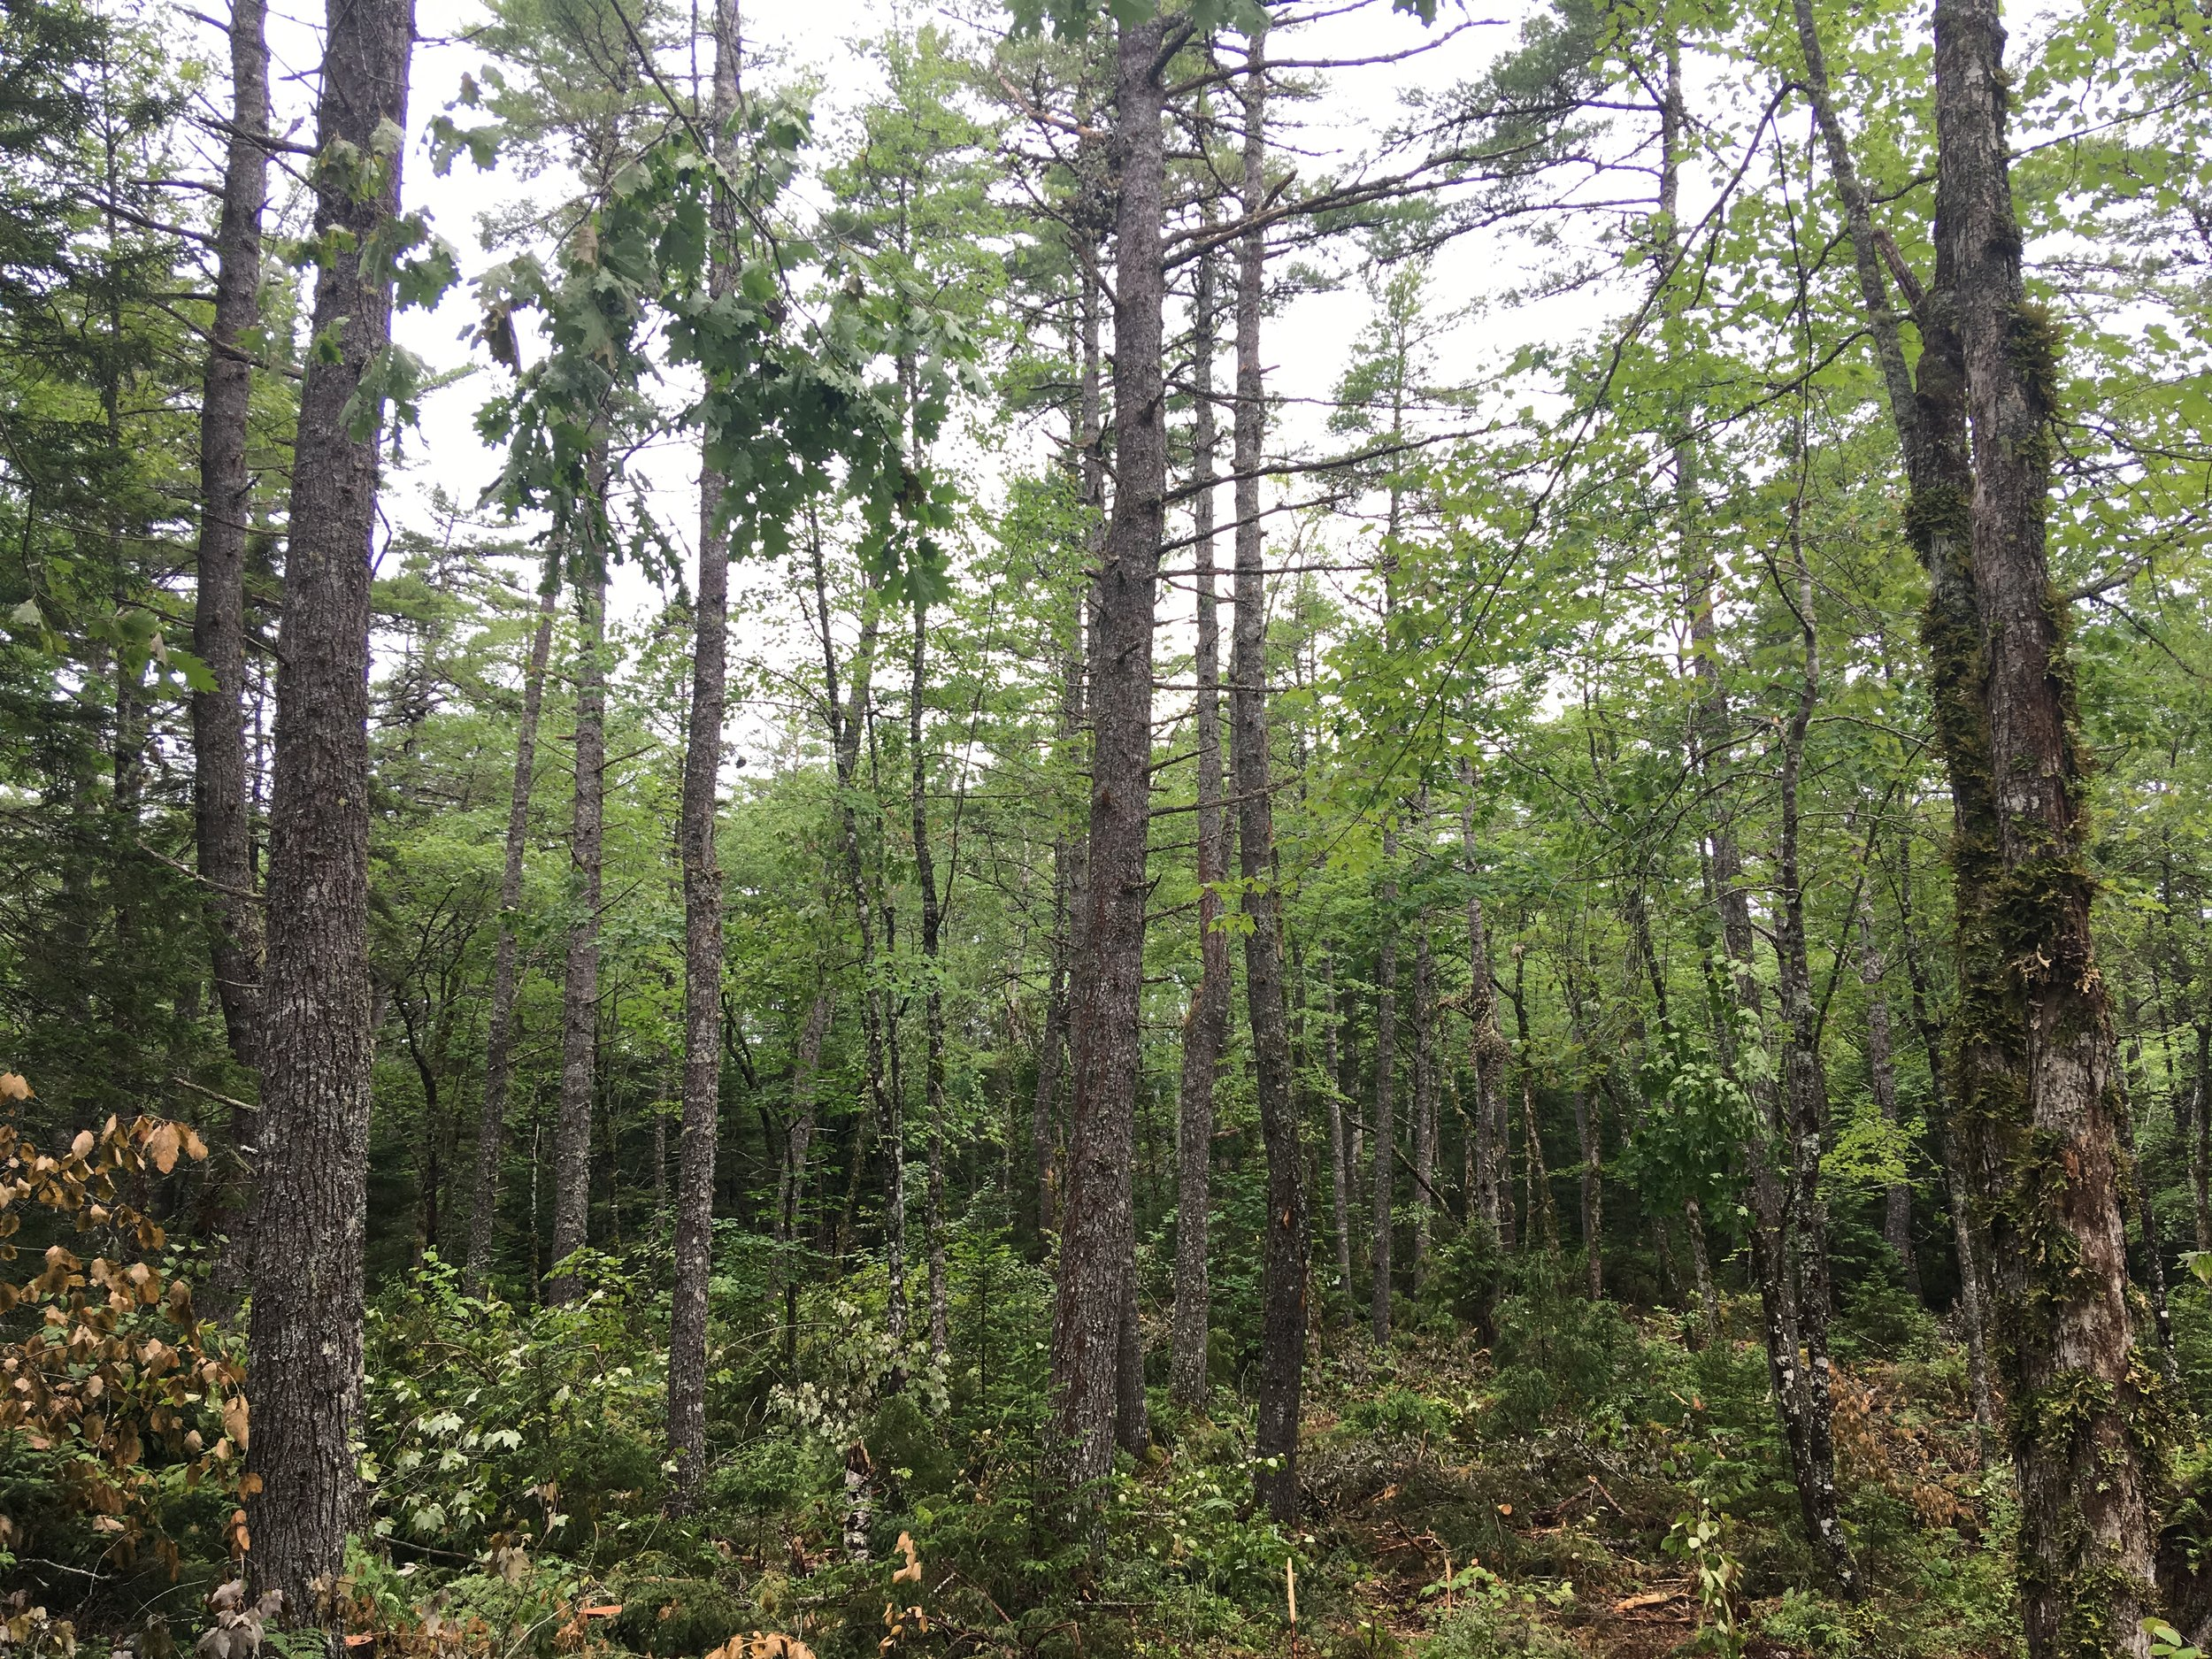 A recently completed white pine/red oak shelterwood harvest in the Oak Lake region of the MCFC license area.